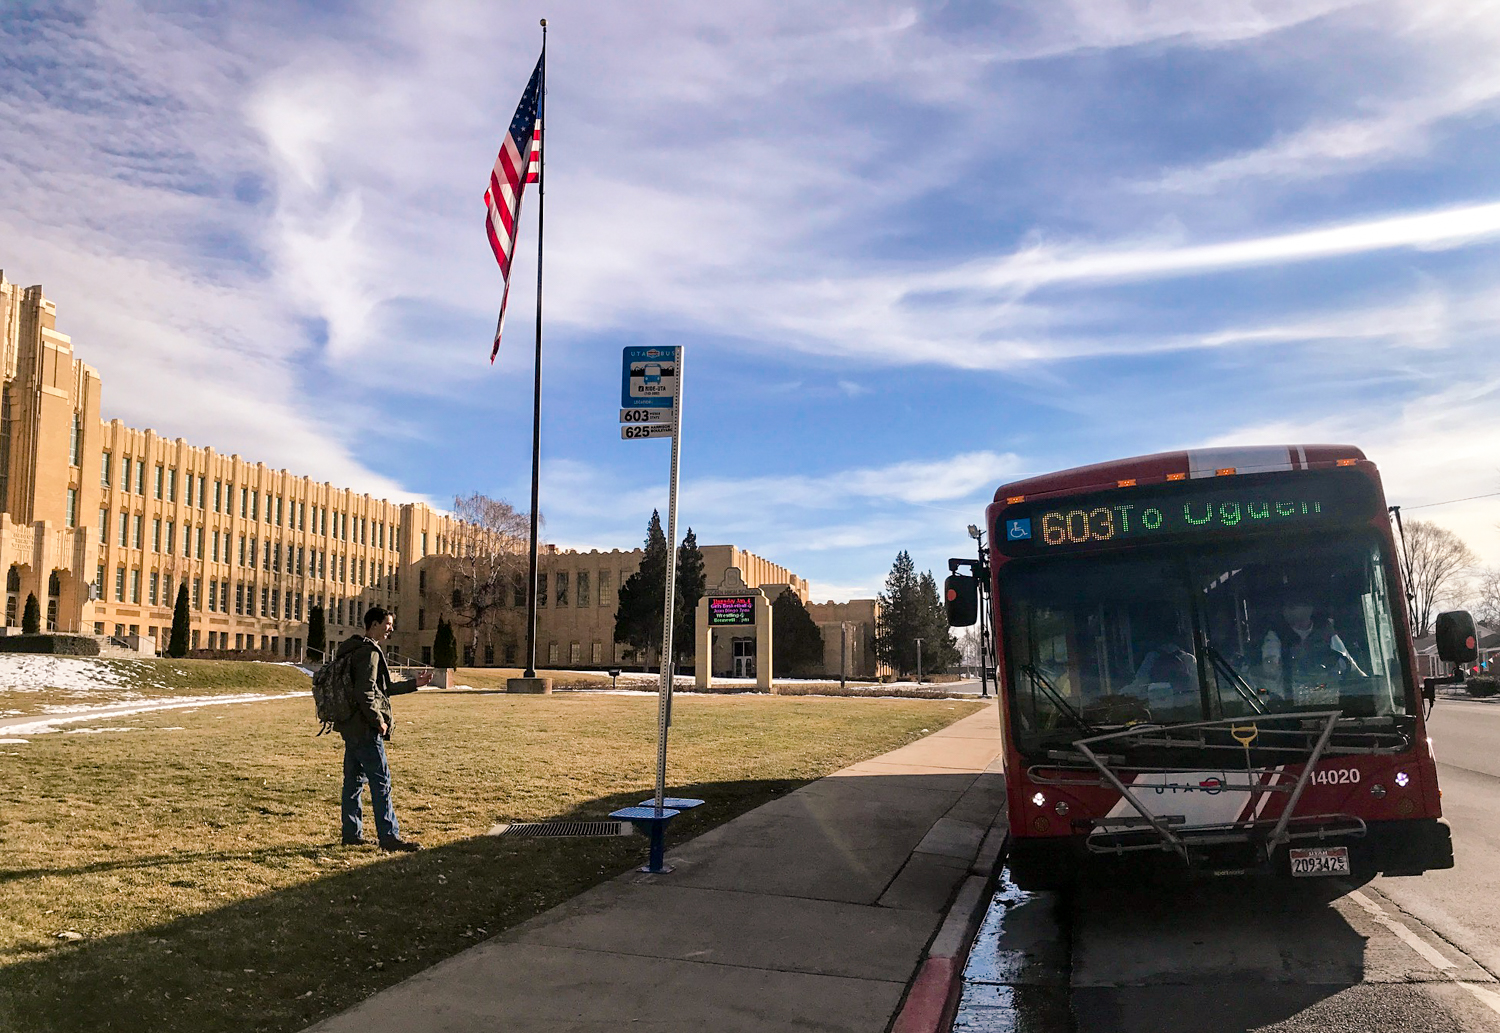 Exploring Weber County Bus Route 603